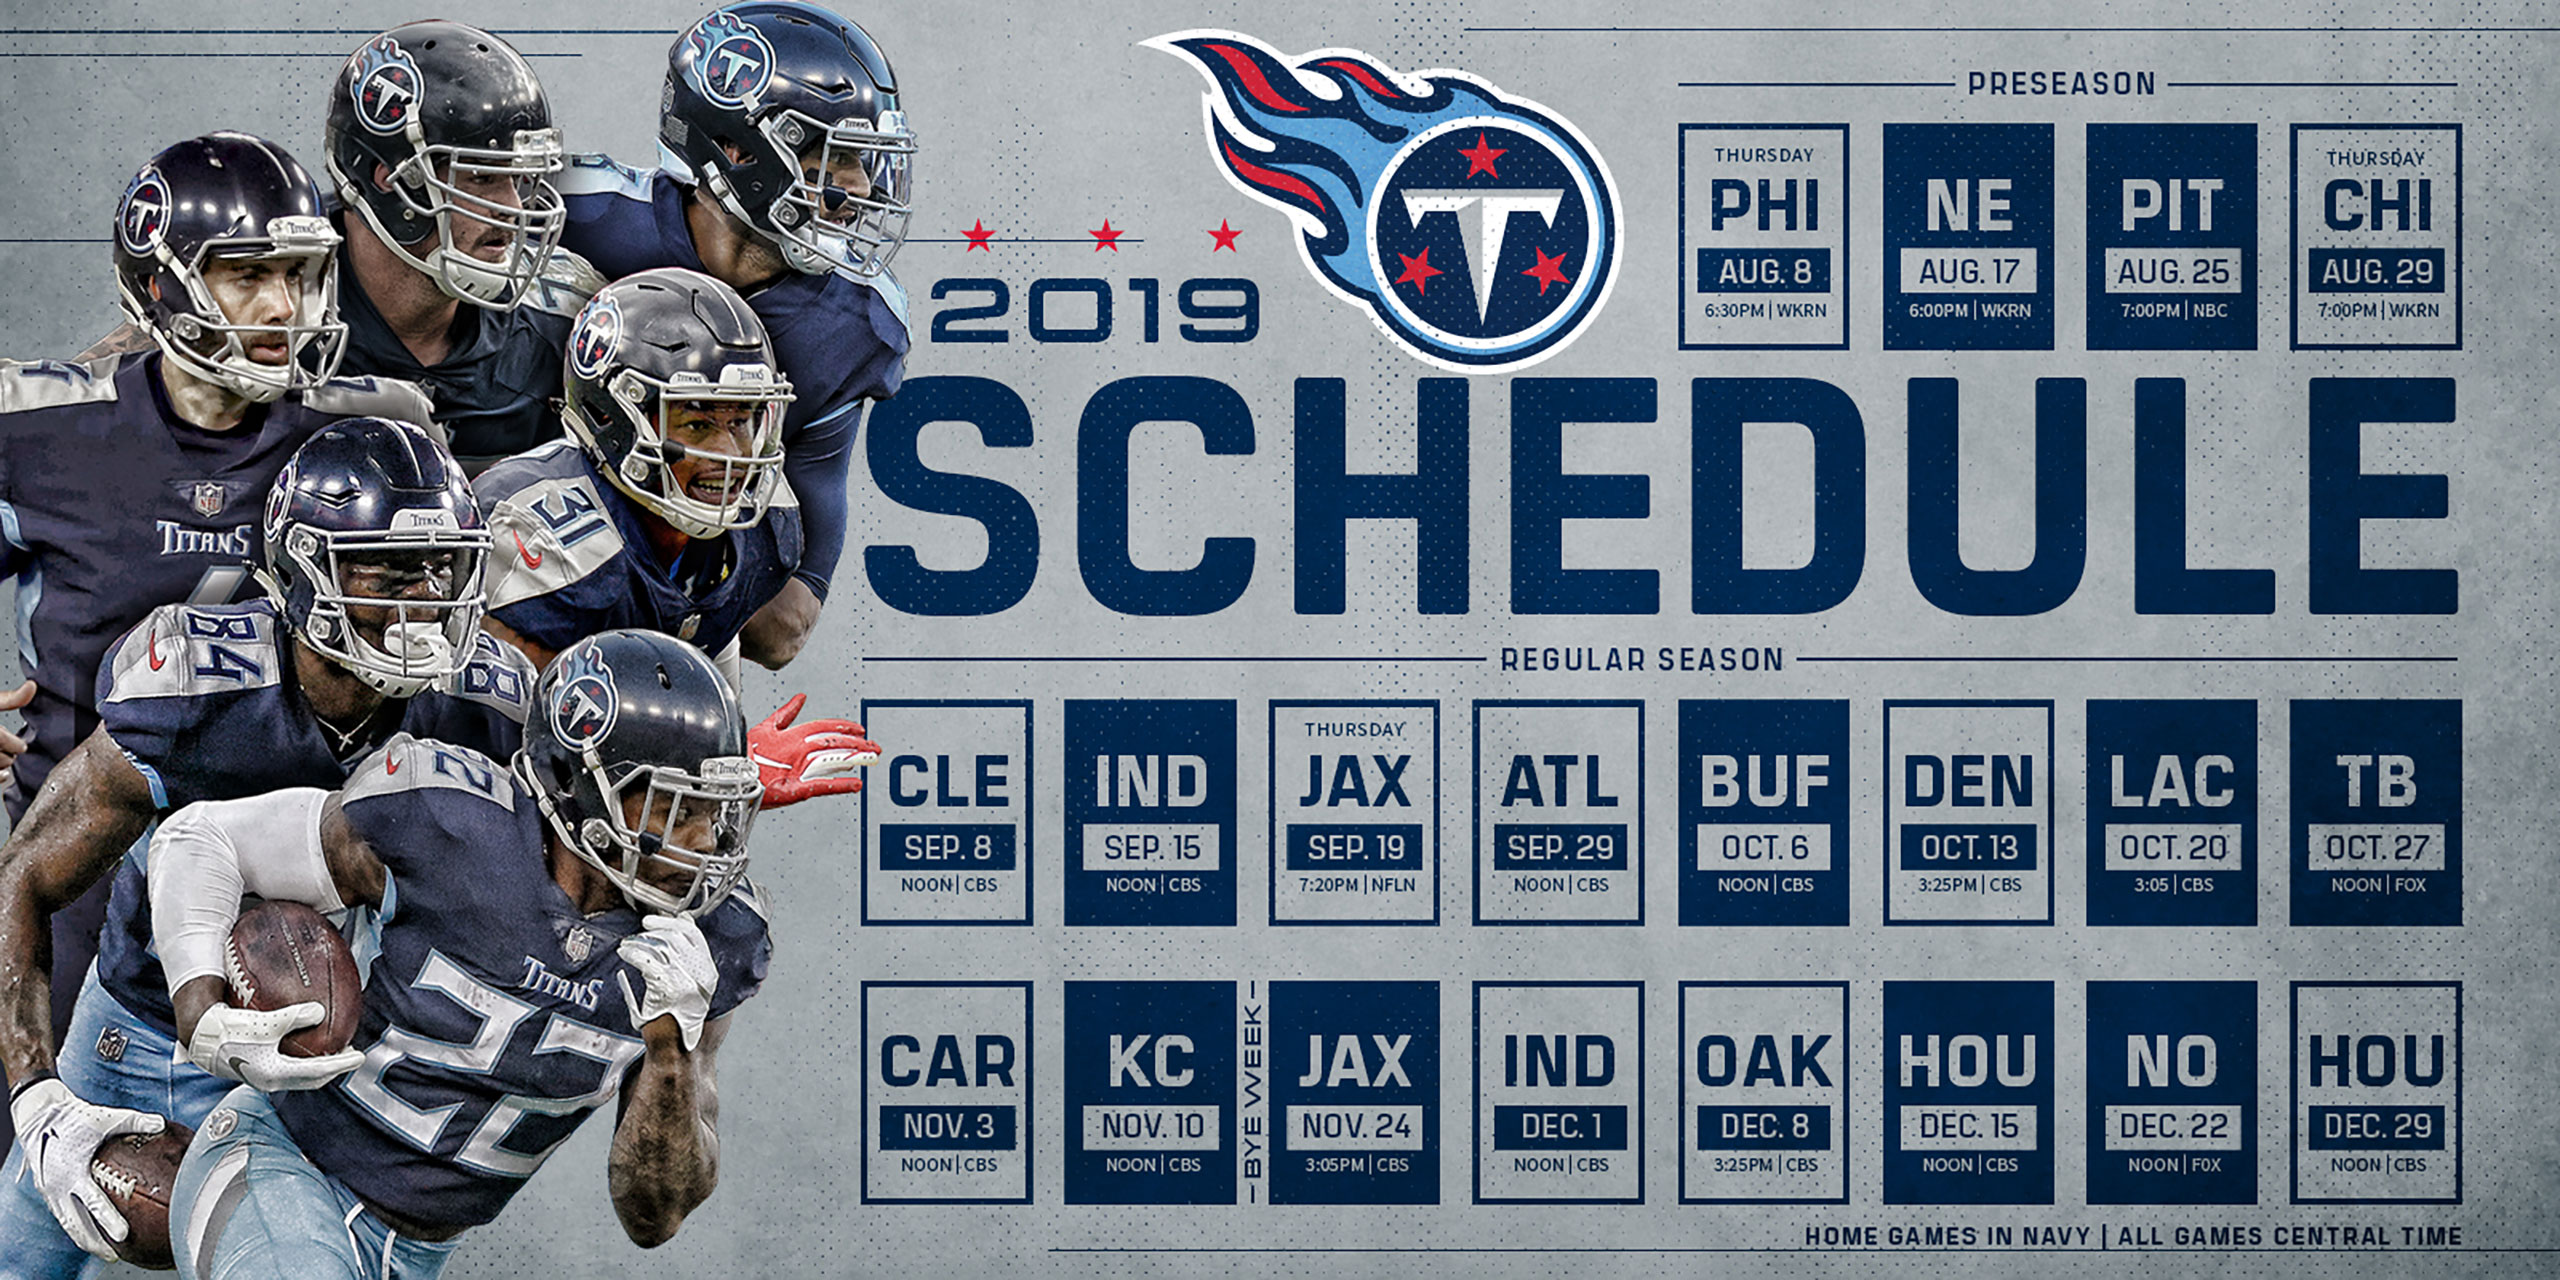 2020 Preseason Football Schedule The Official Site of the Tennessee Titans